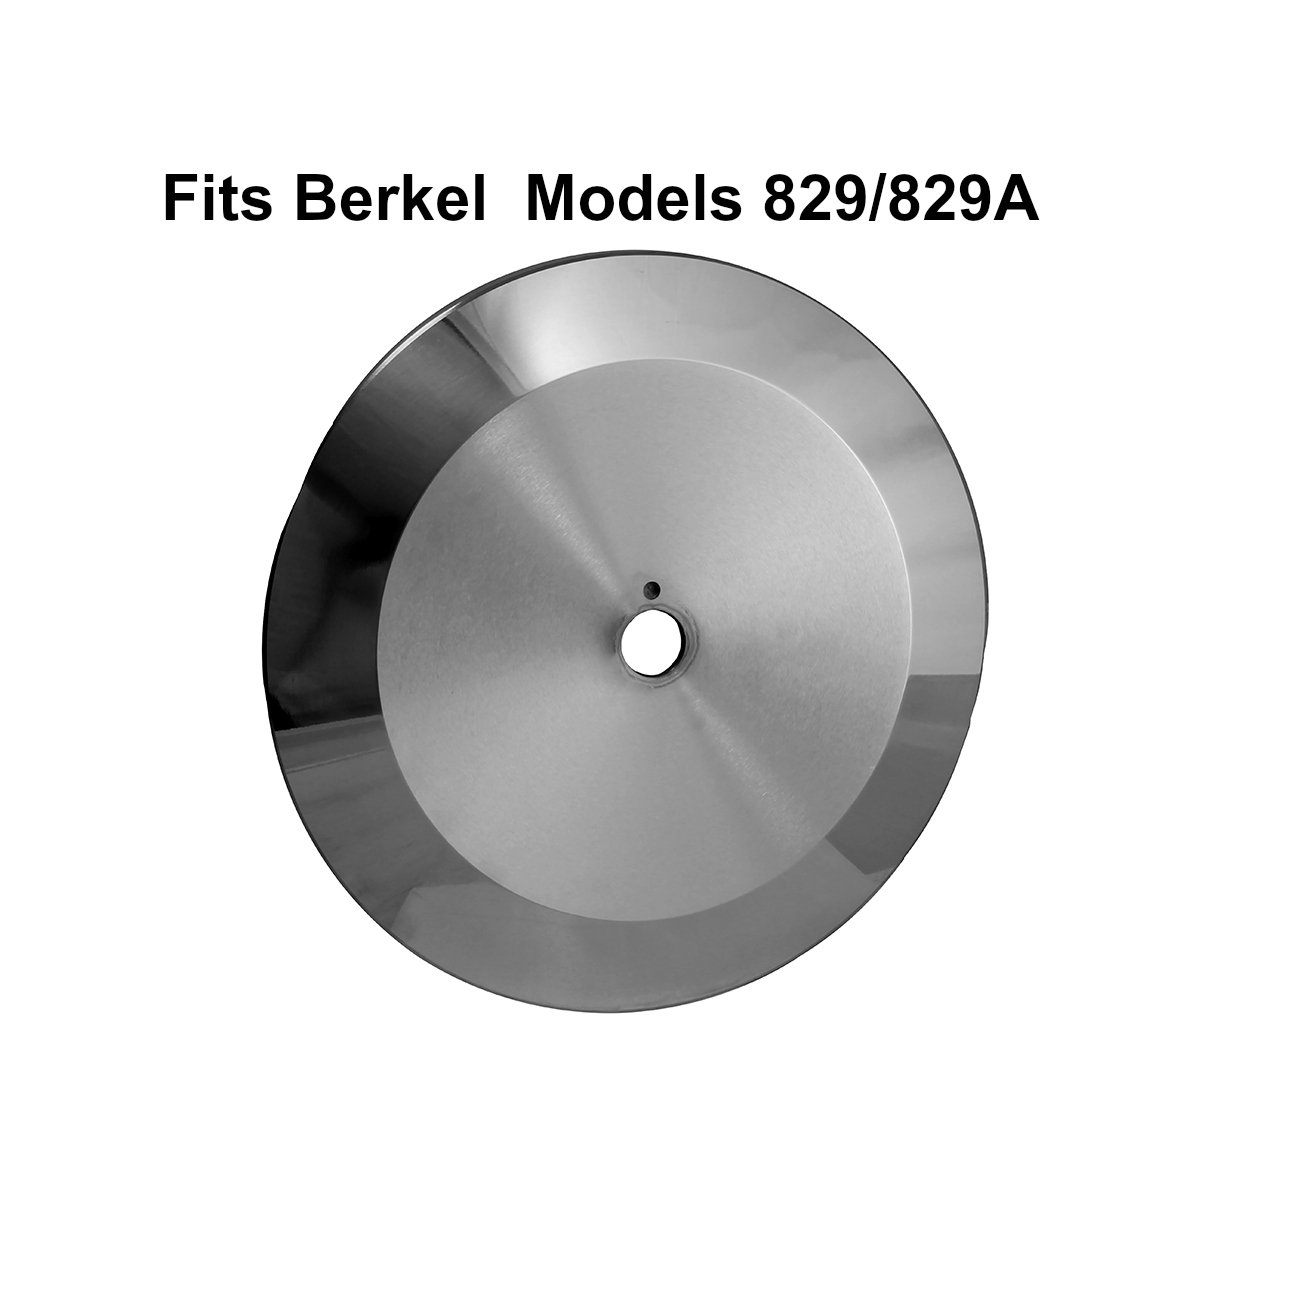 Berkel Replacement Blade Meat / Deli Slicer Fits Model 829/829A Made in Italy Sharp New